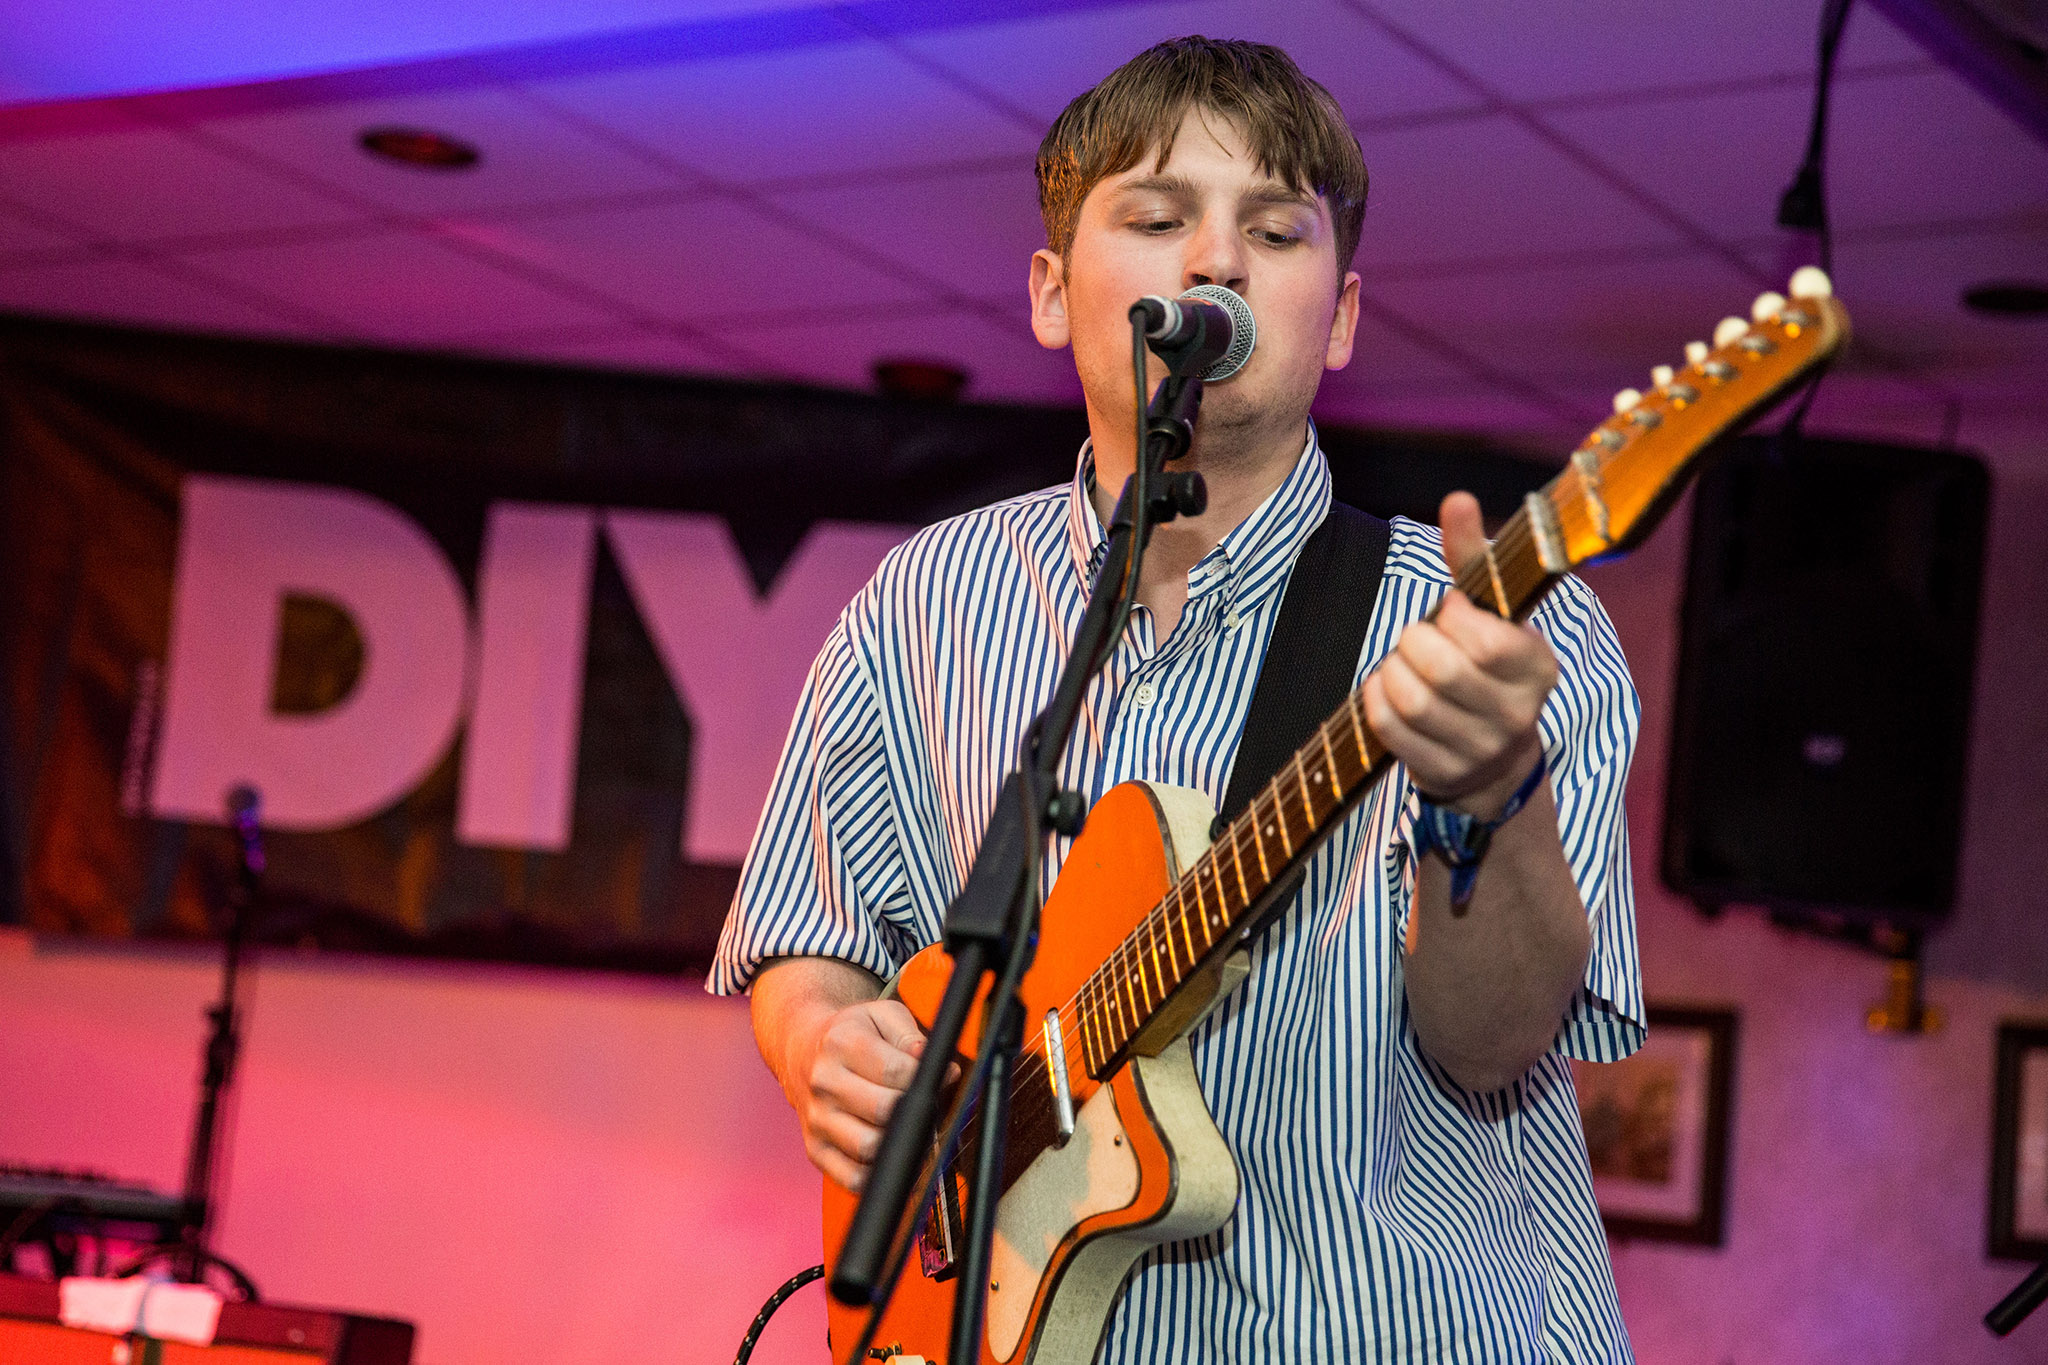 Trudy bring shuffling feet and soppy serenades to DIY's Great Escape stage